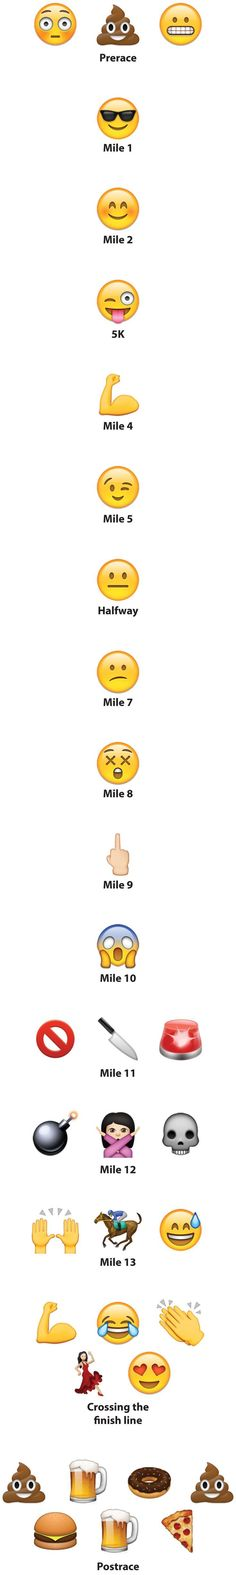 Running a Half Marathon as Told by Emojis www.runnersworld....